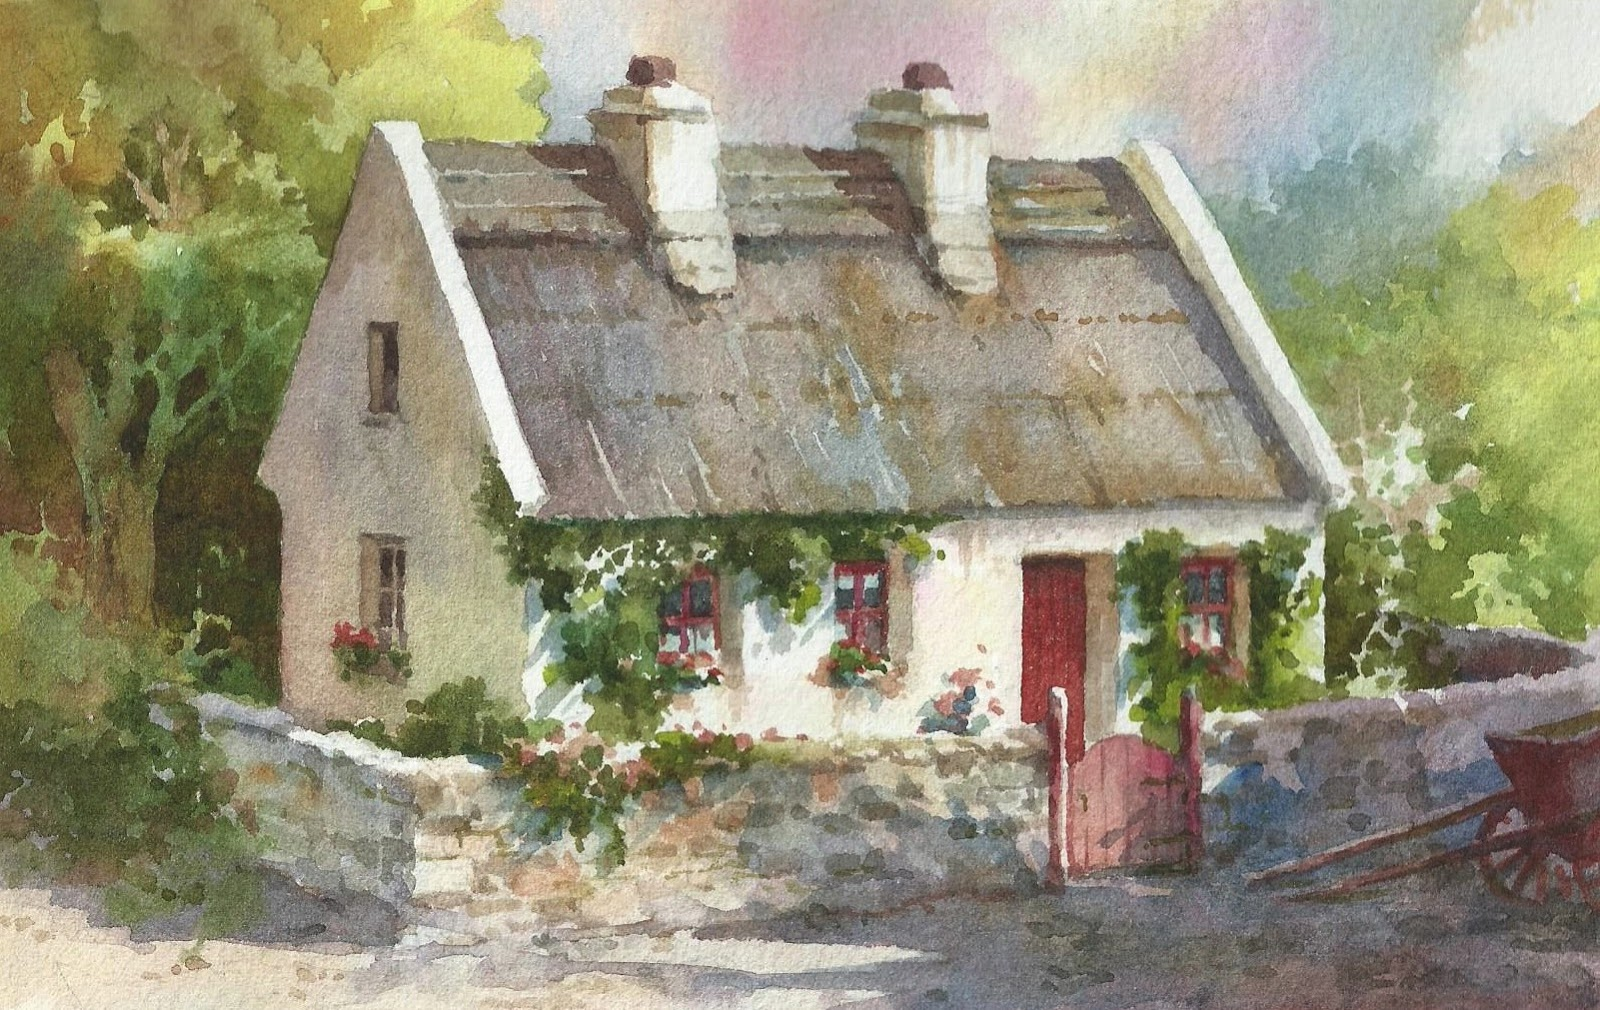 New Paintings Of Thatched Cottages In Ireland